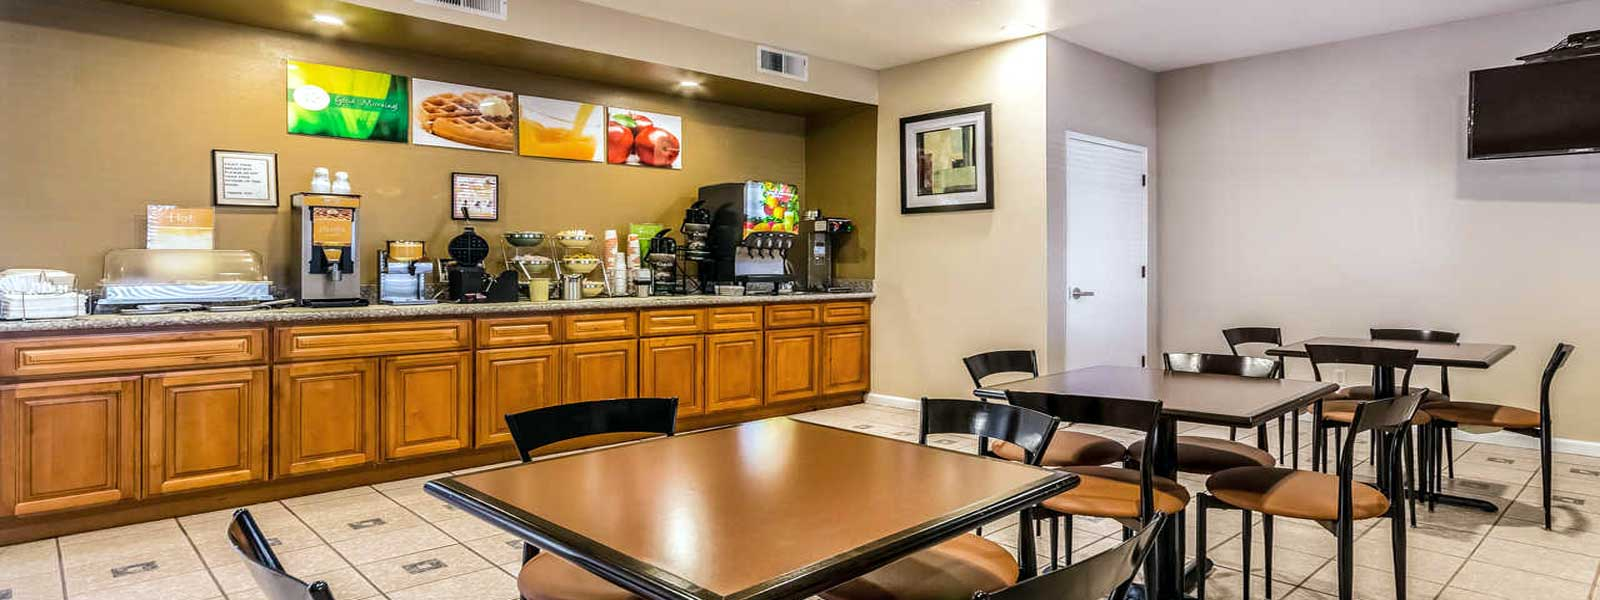 Hotels in Fresno Great Rates Trip Advisor